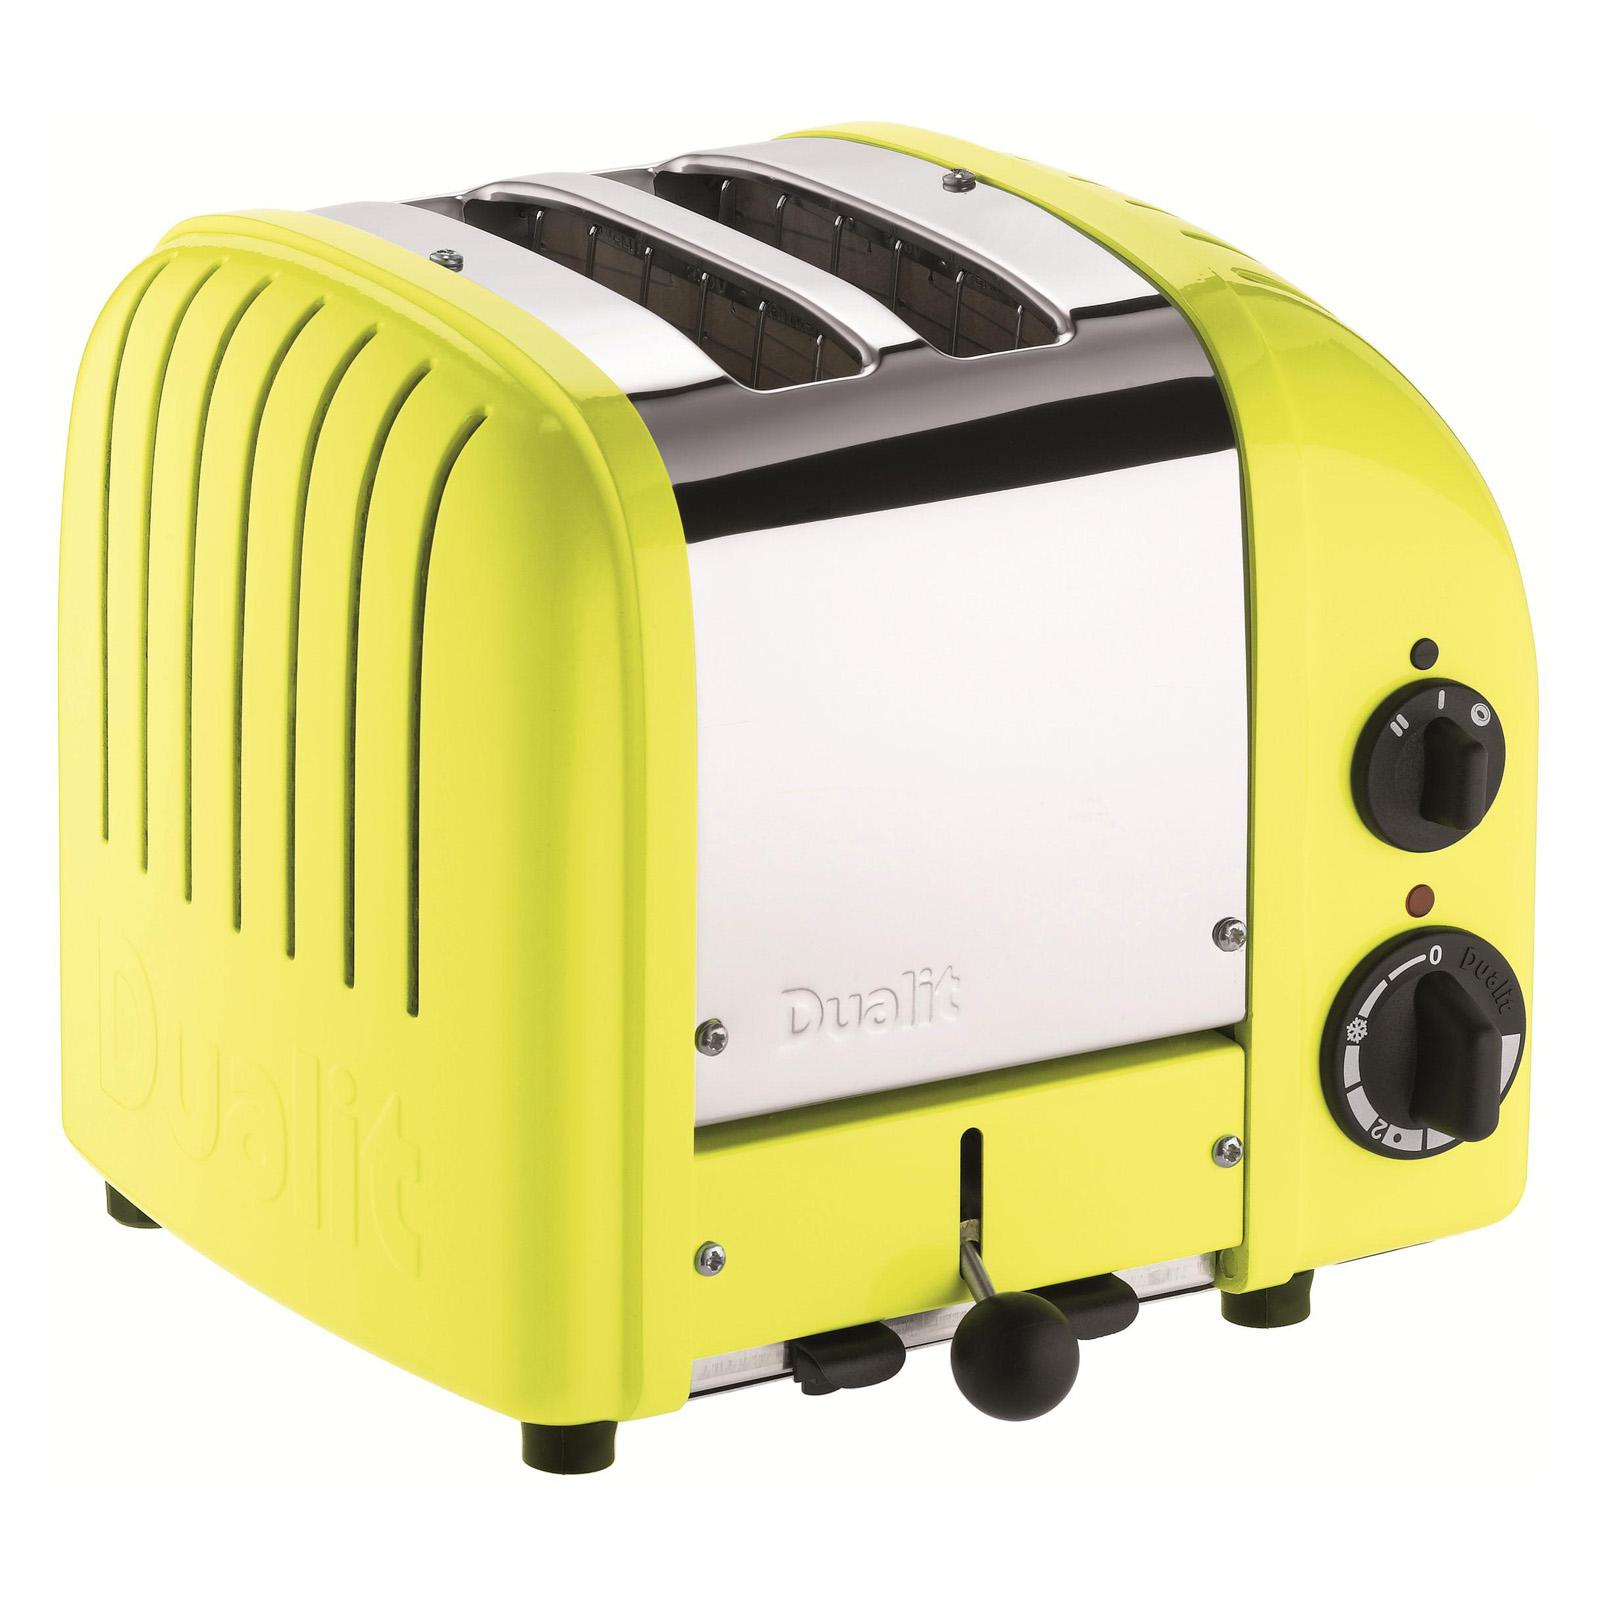 Dualit 27168 New Generation 2 Slice Classic Toaster - Cit...